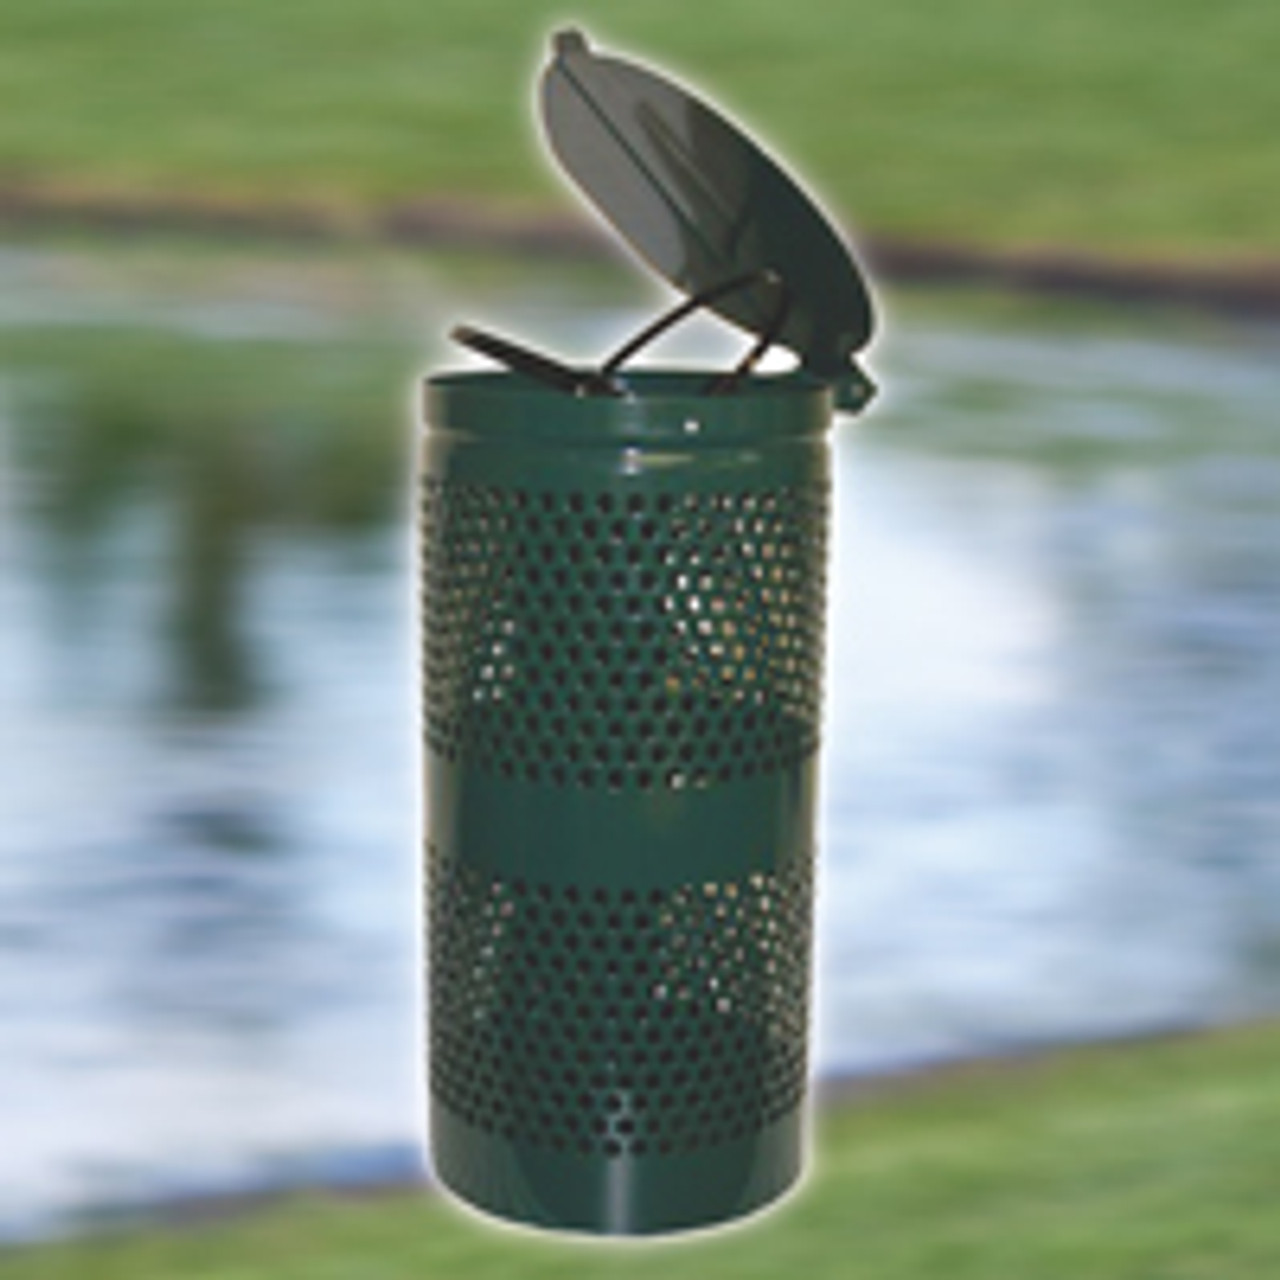 Dogipot steel waste receptacle in green